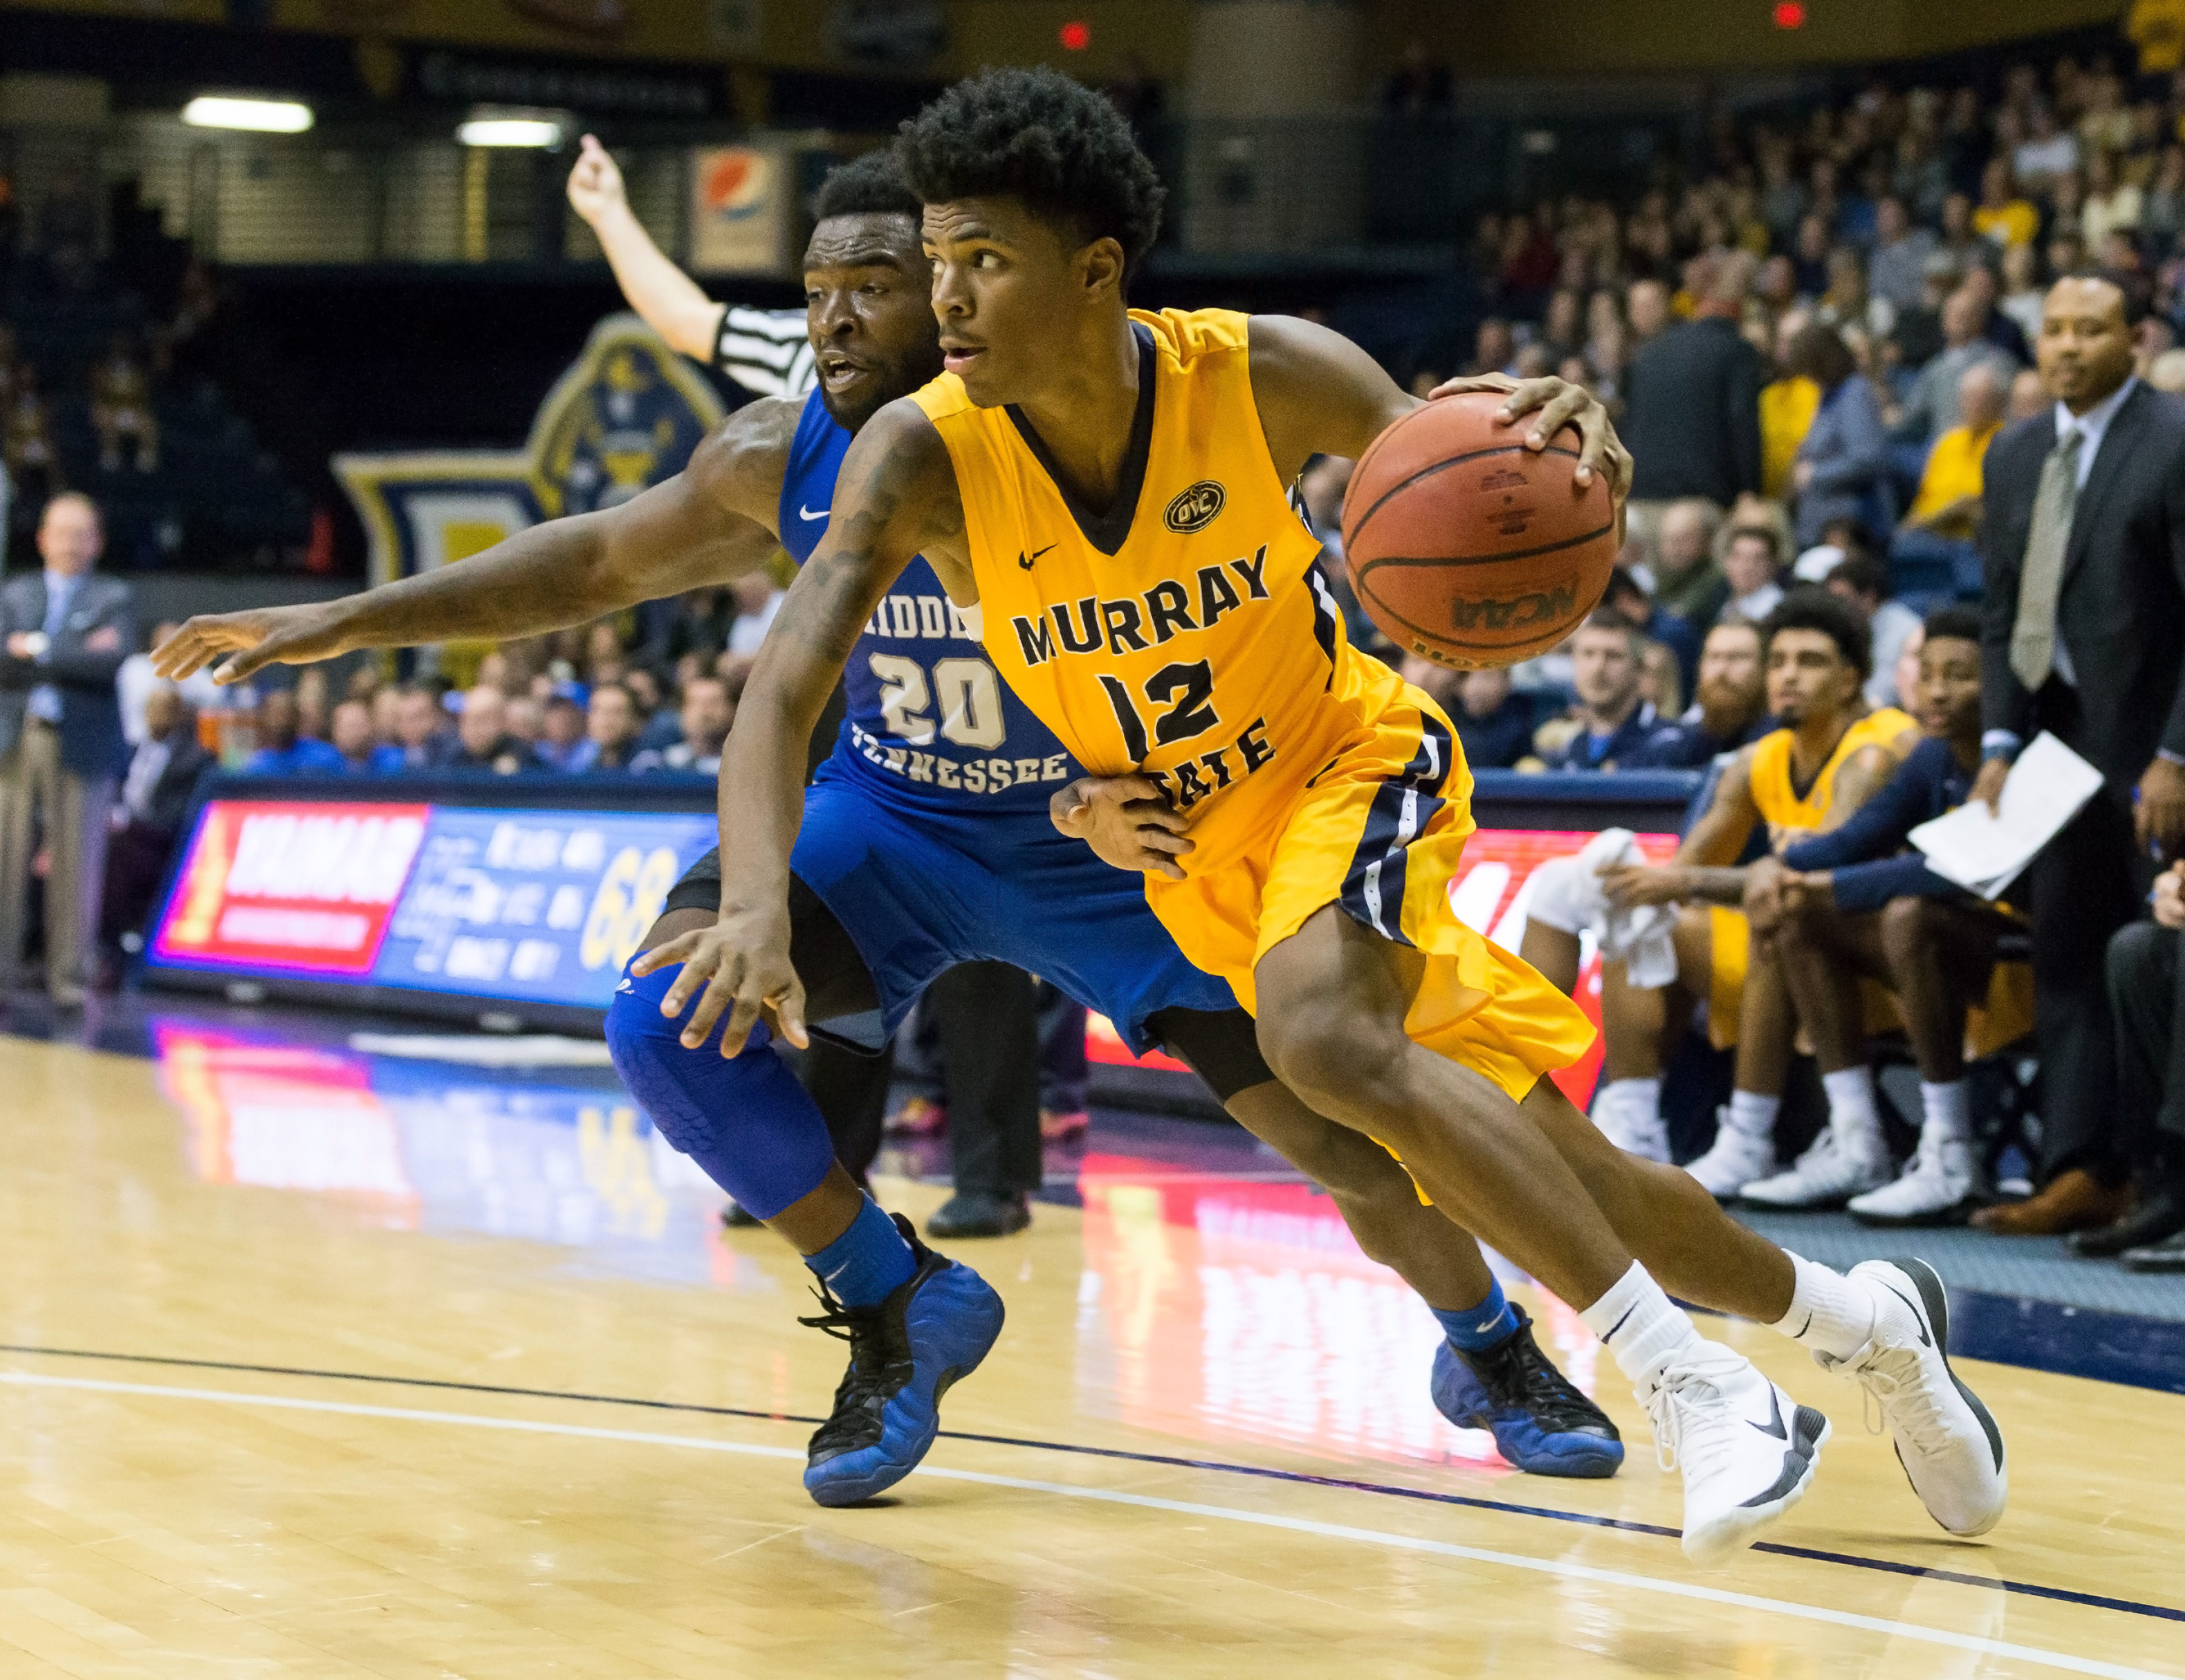 With fewer than 15 seconds to go in a November game Ja Morant received an inbounds pass dribbled the length of the court with his left hand slipped past